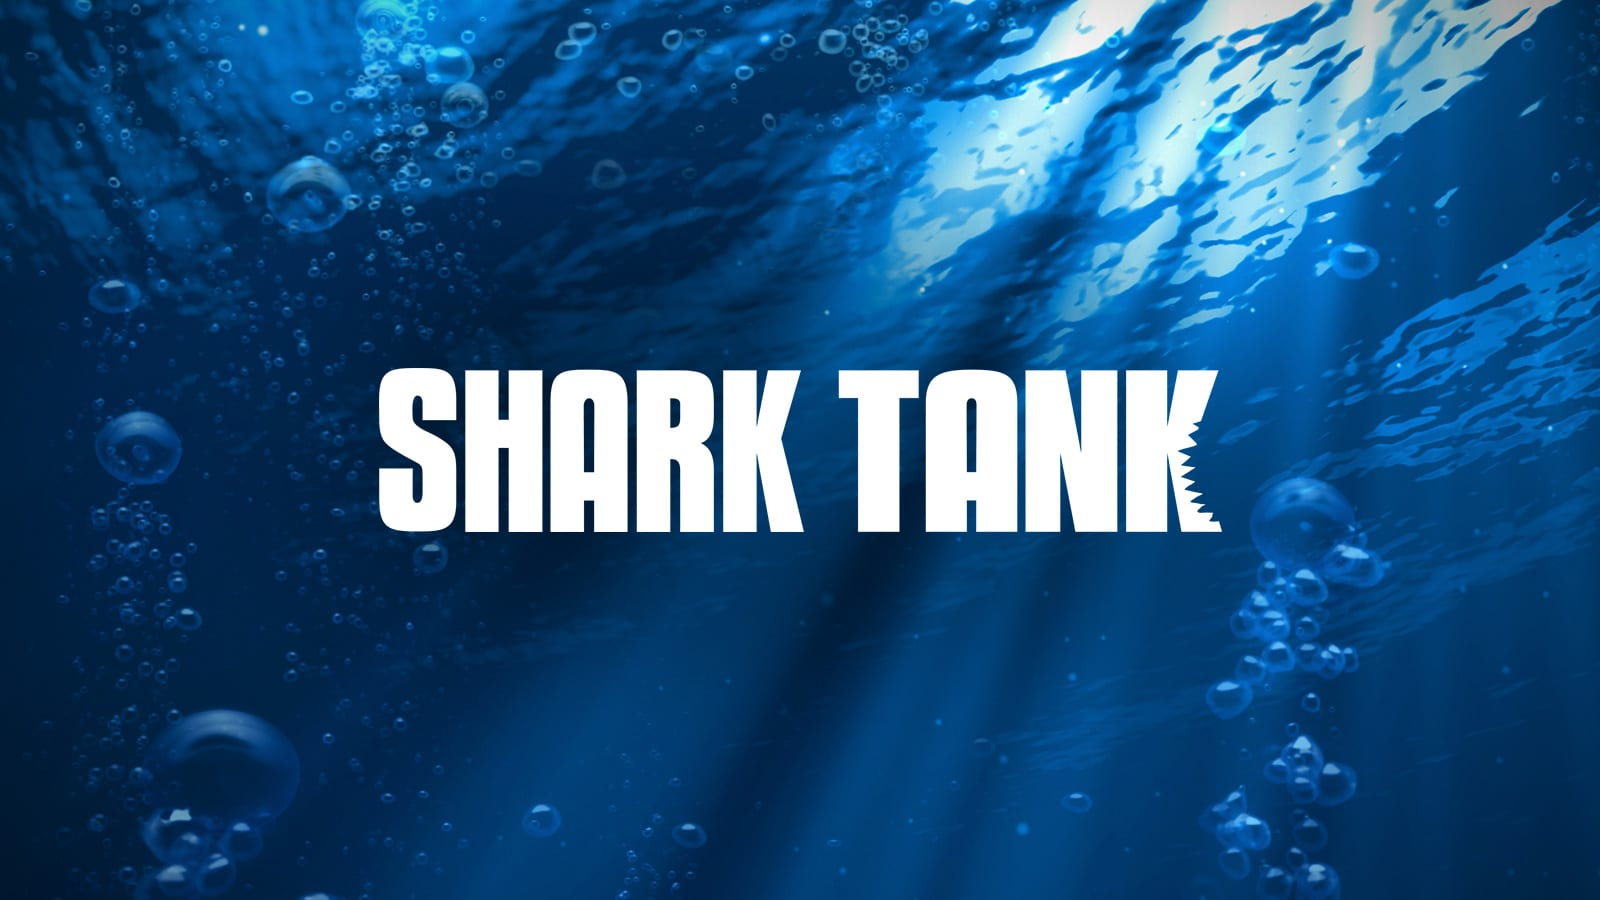 Shark Tank - About, Latest Clips, and Cast